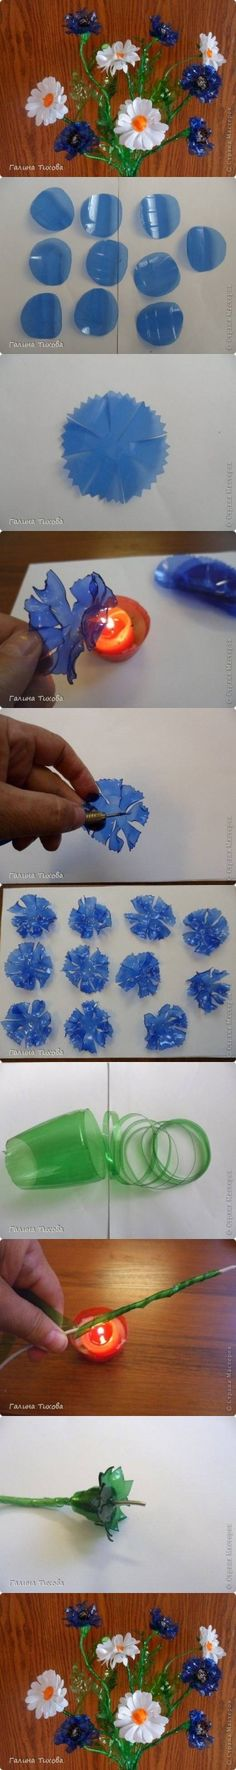 DIY Plastic Bottle Cornflowers and Daisies DIY Projects